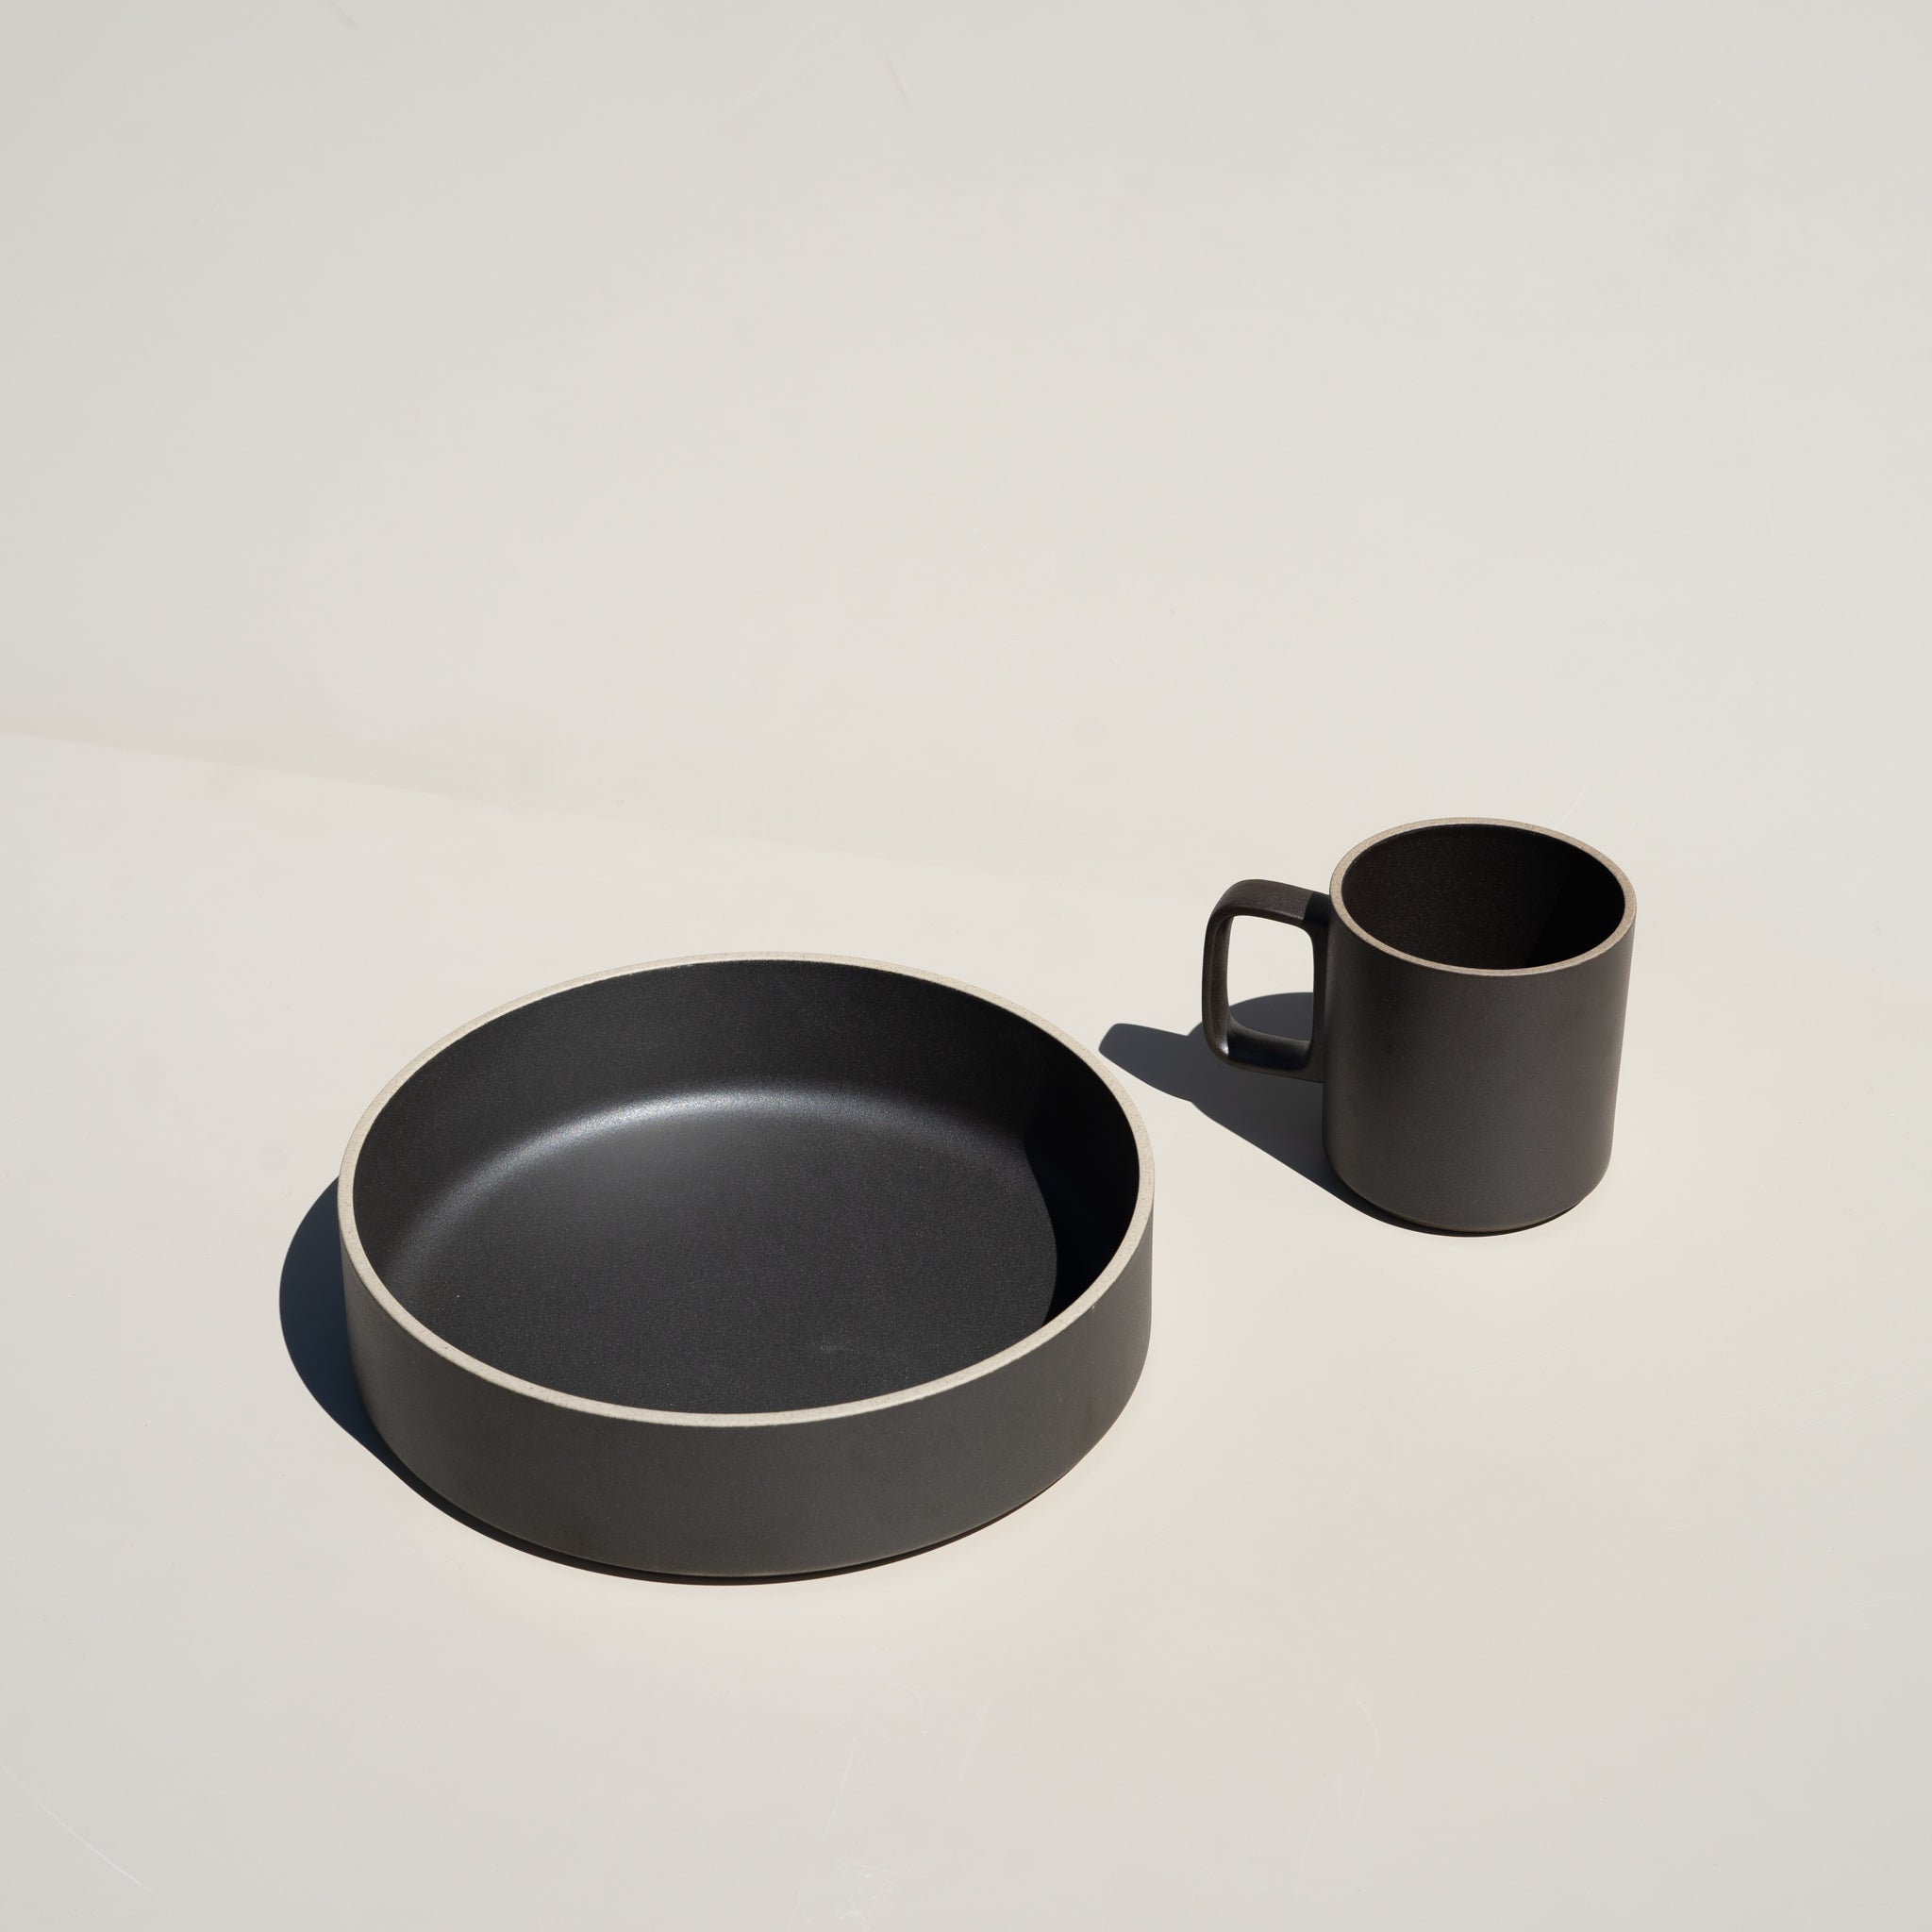 Japanese dinnerware from Hasami Porcelain at Commonplace.